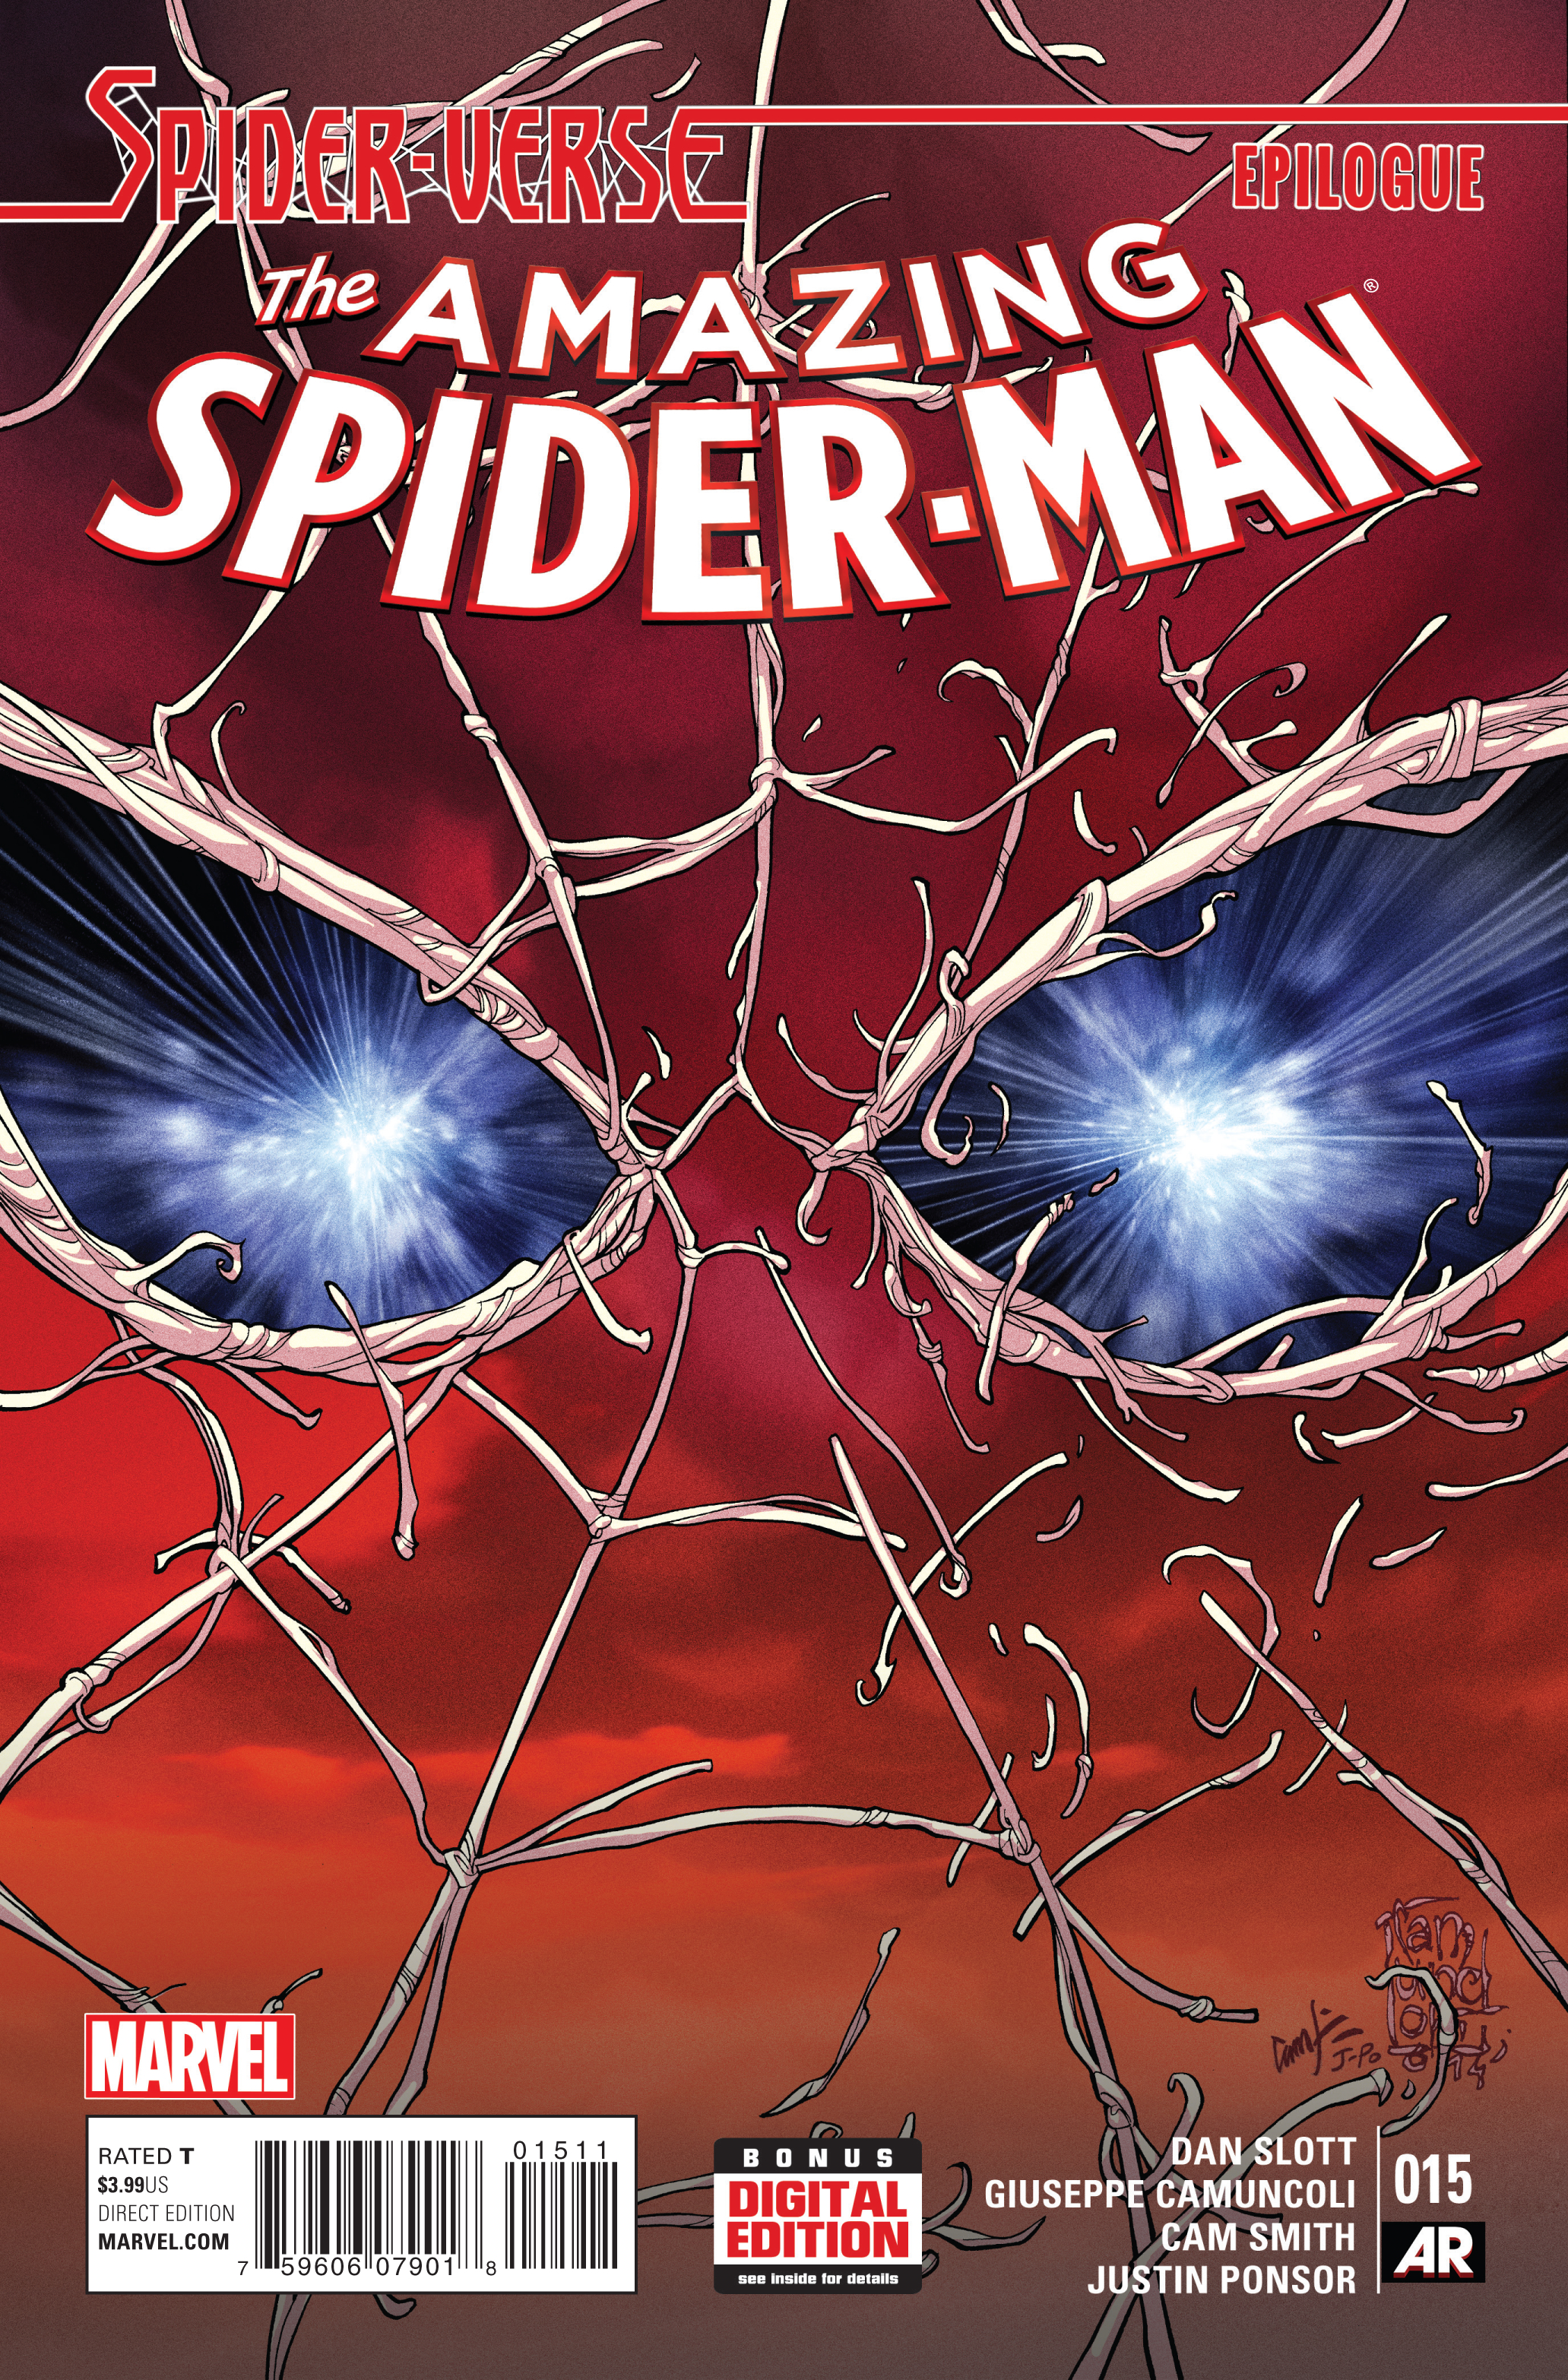 AMAZING SPIDER-MAN #15 SV